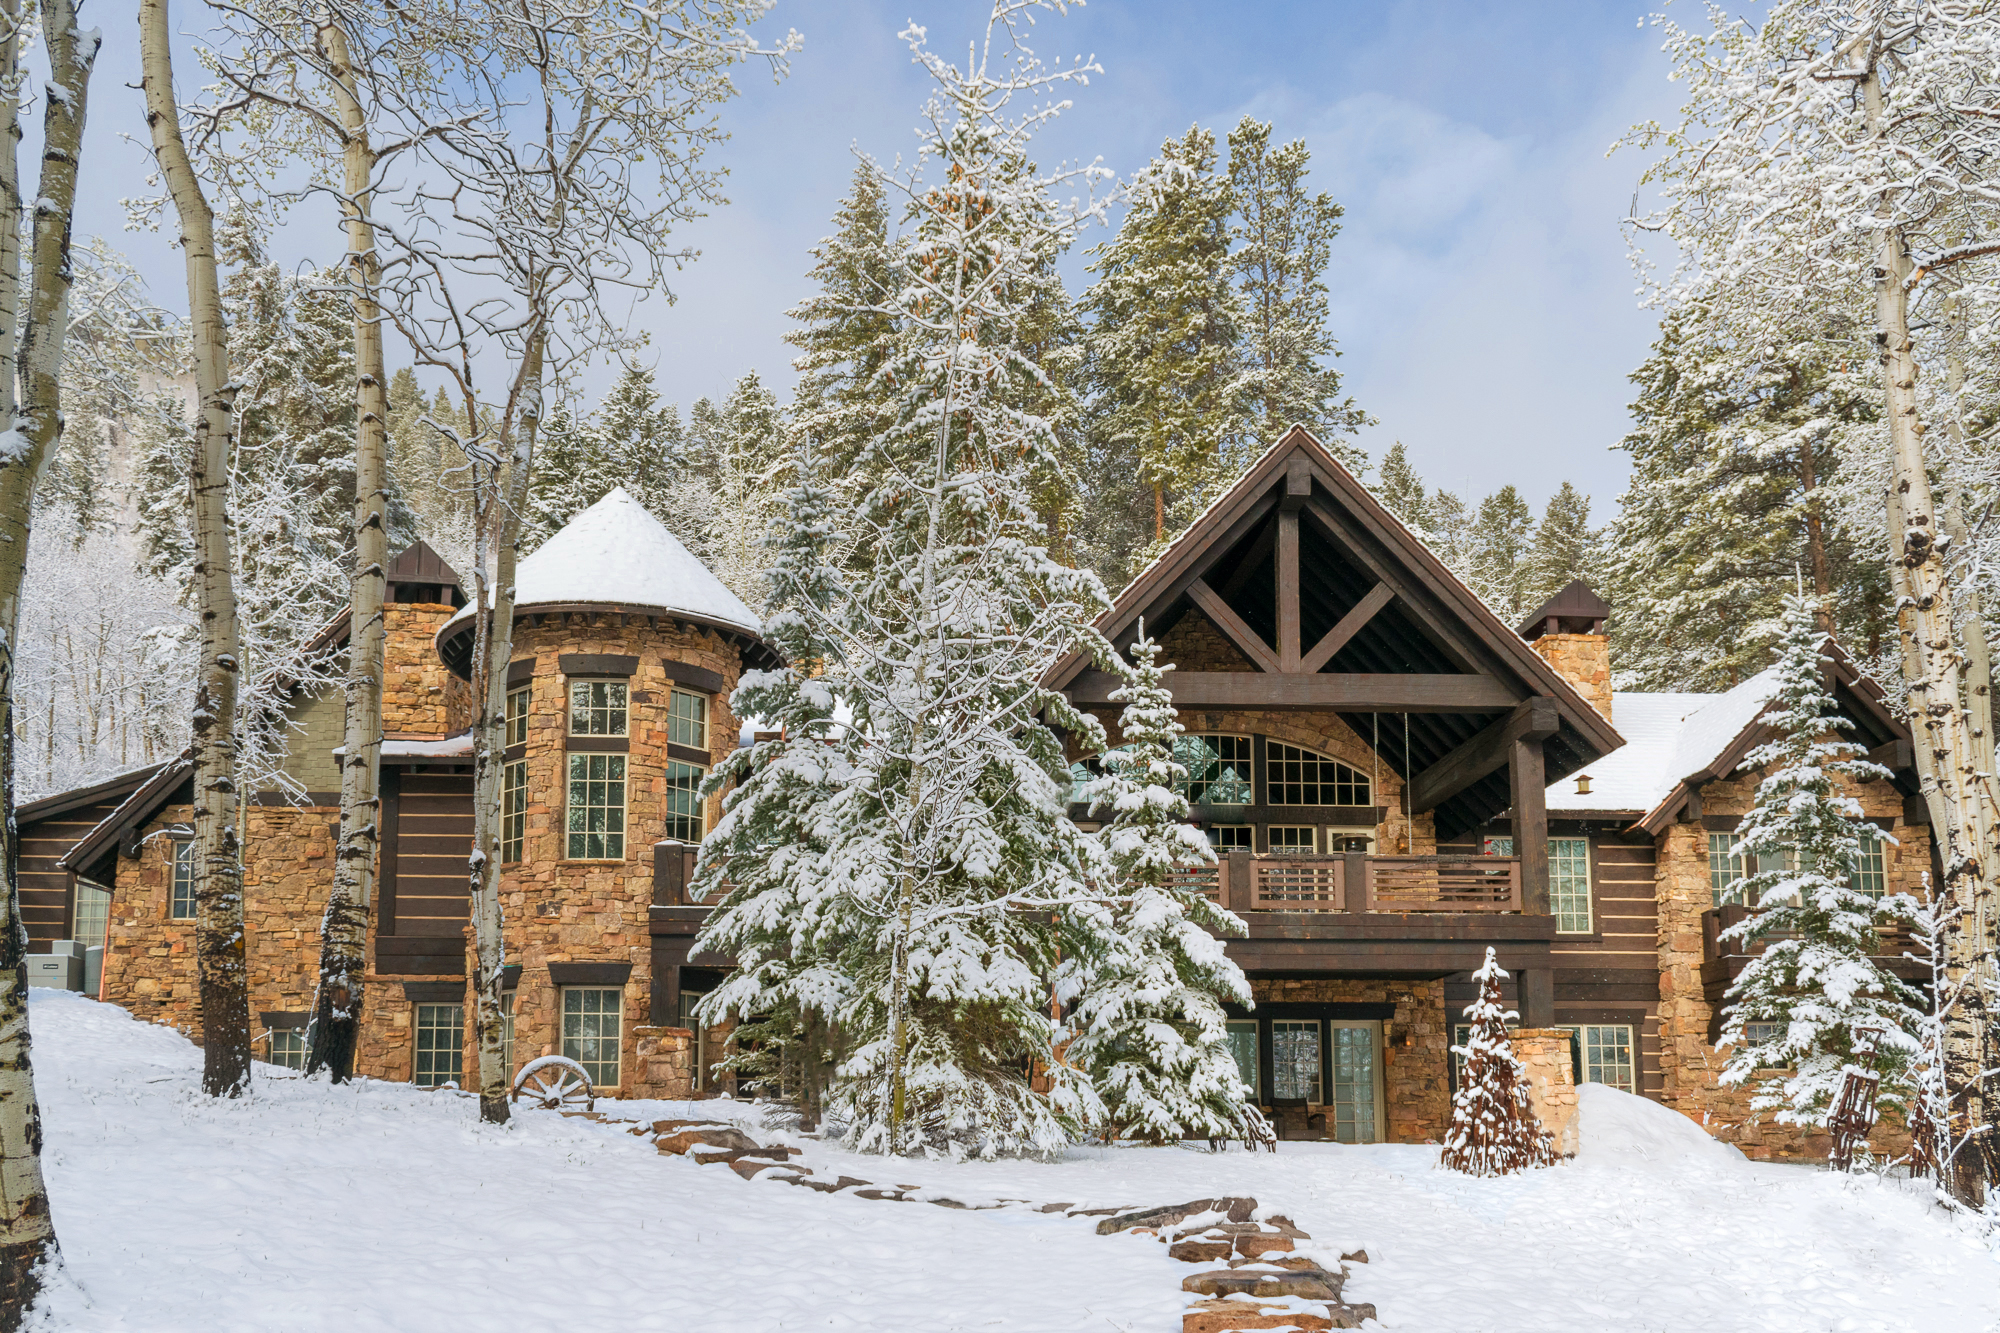 Edwards CO Vacation Rental Welcome to your